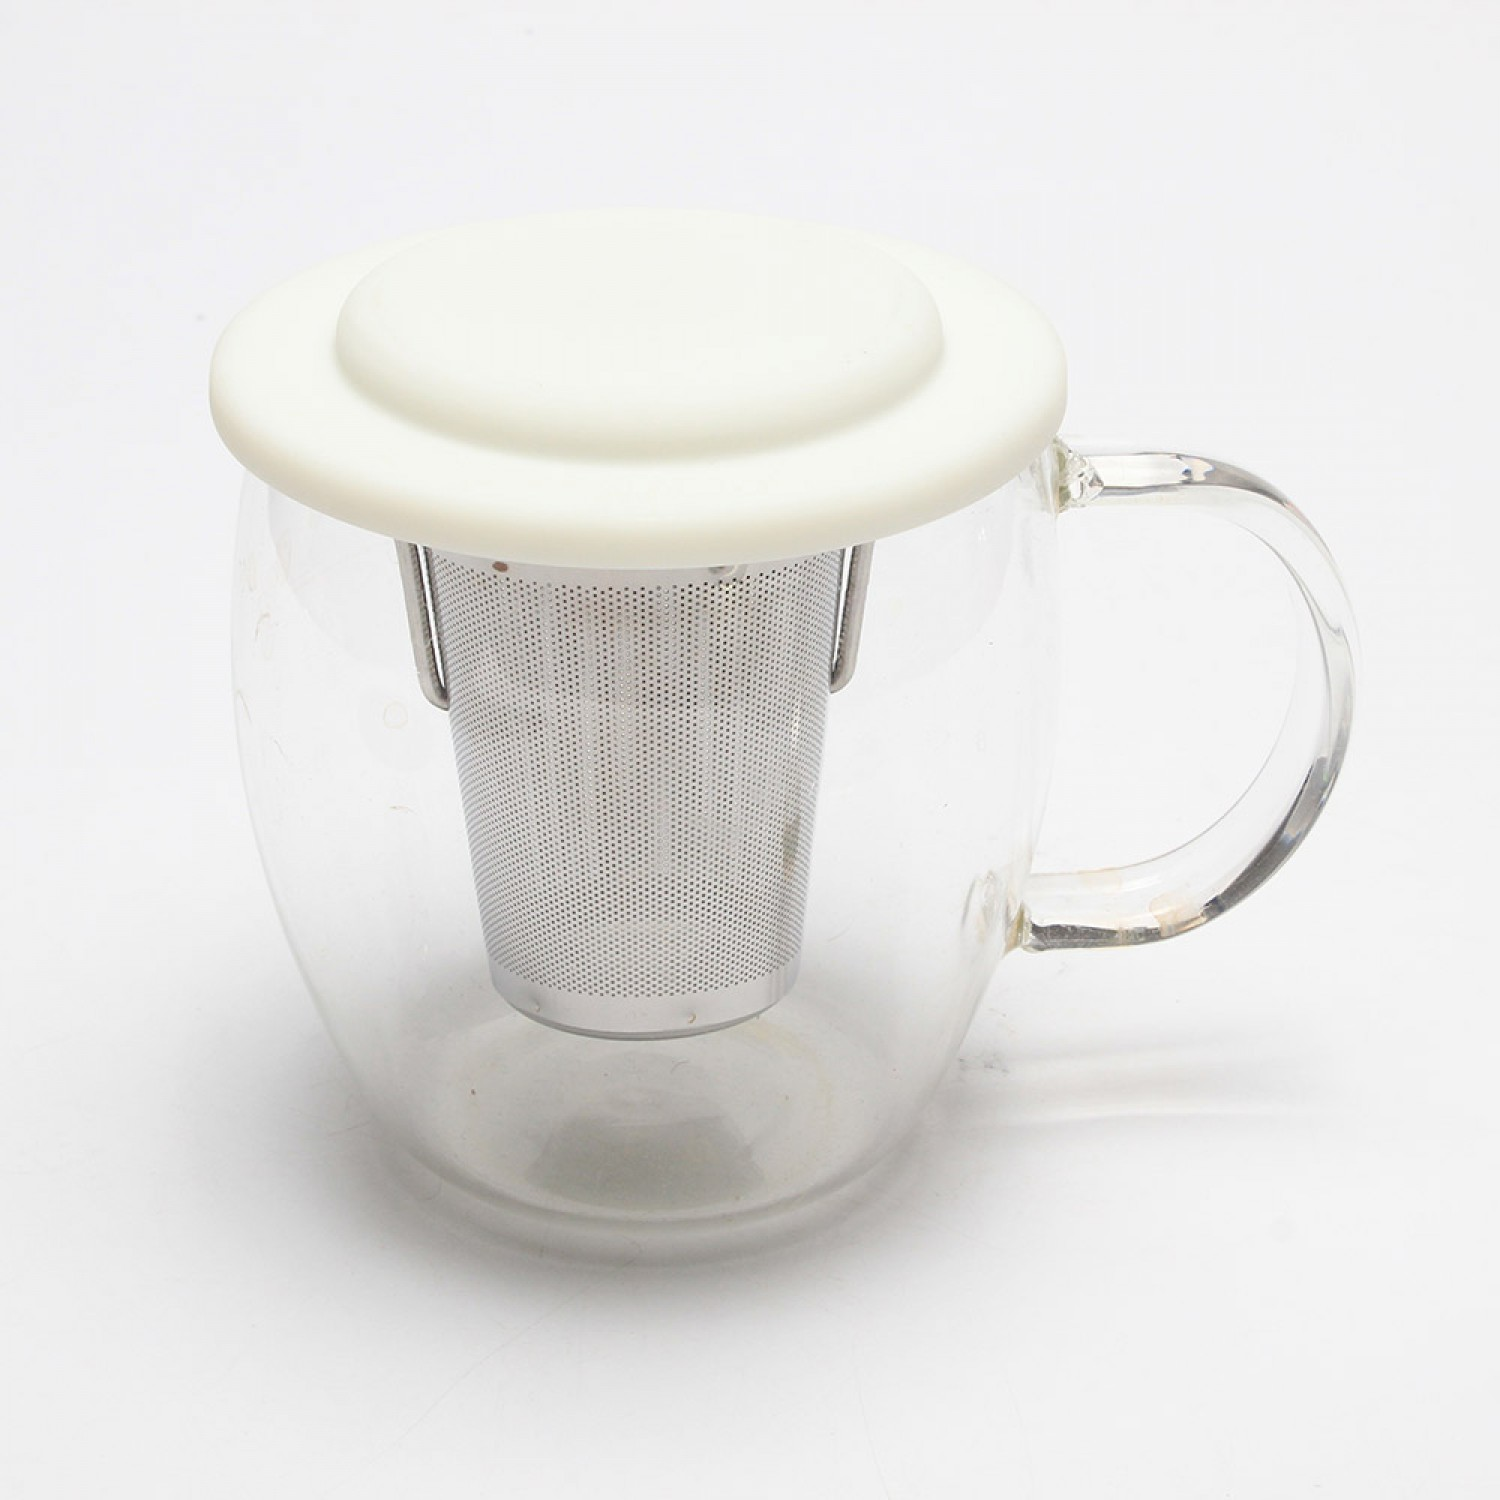 Etched Mesh Stainless Steel Tea Infuser with Movable Holder Lid